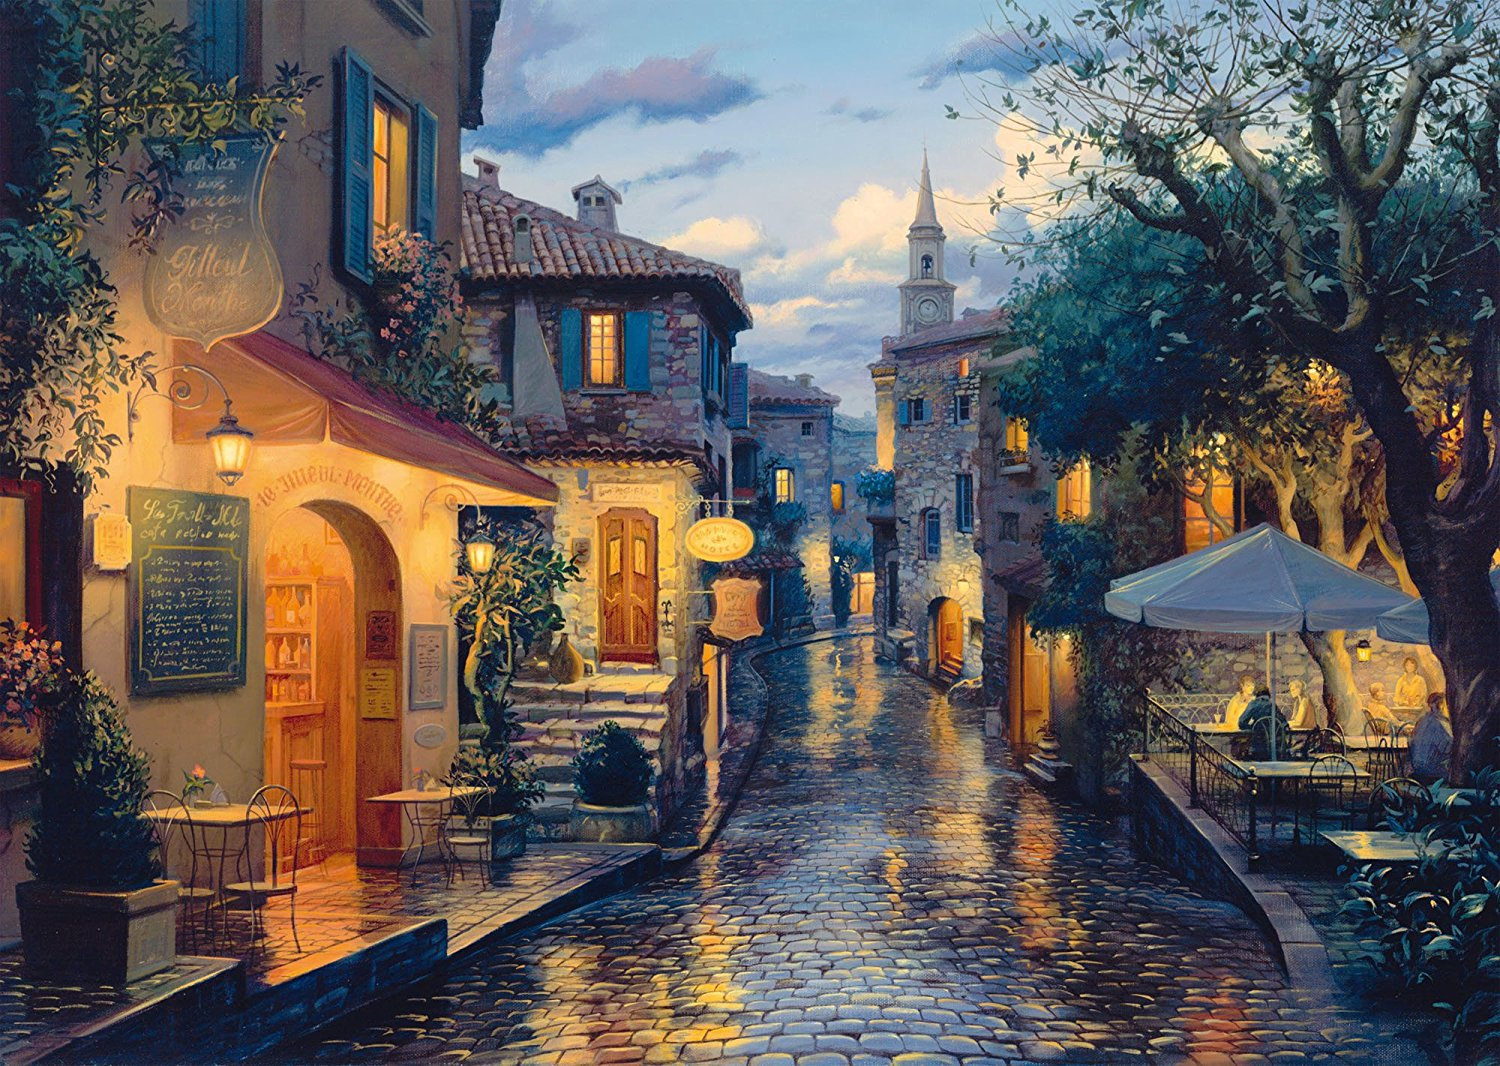 Stock Cars For Sale >> Puzzle Evgeny Lushpin - Magical Evening Mood Schmidt-Spiele-59563 1000 pieces Shops and City ...